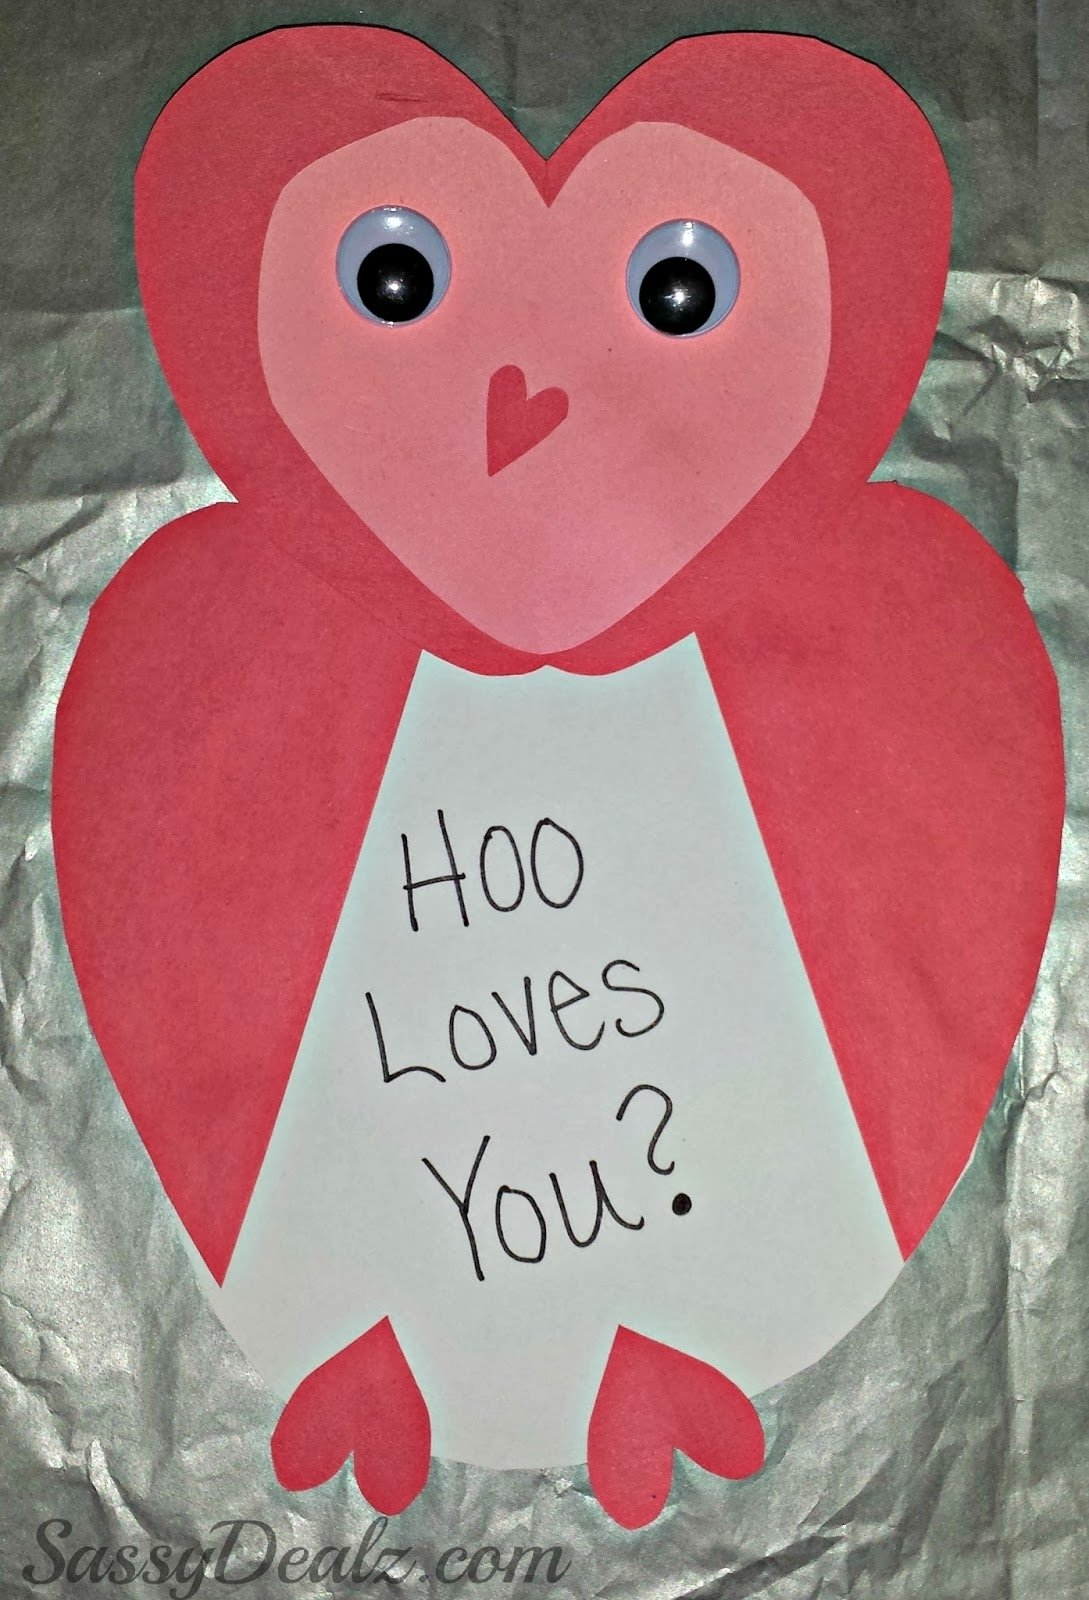 10 Amazing Crafts For Valentines Day Ideas valentines day arts and crafts for kids quotes wishes for 5 2020